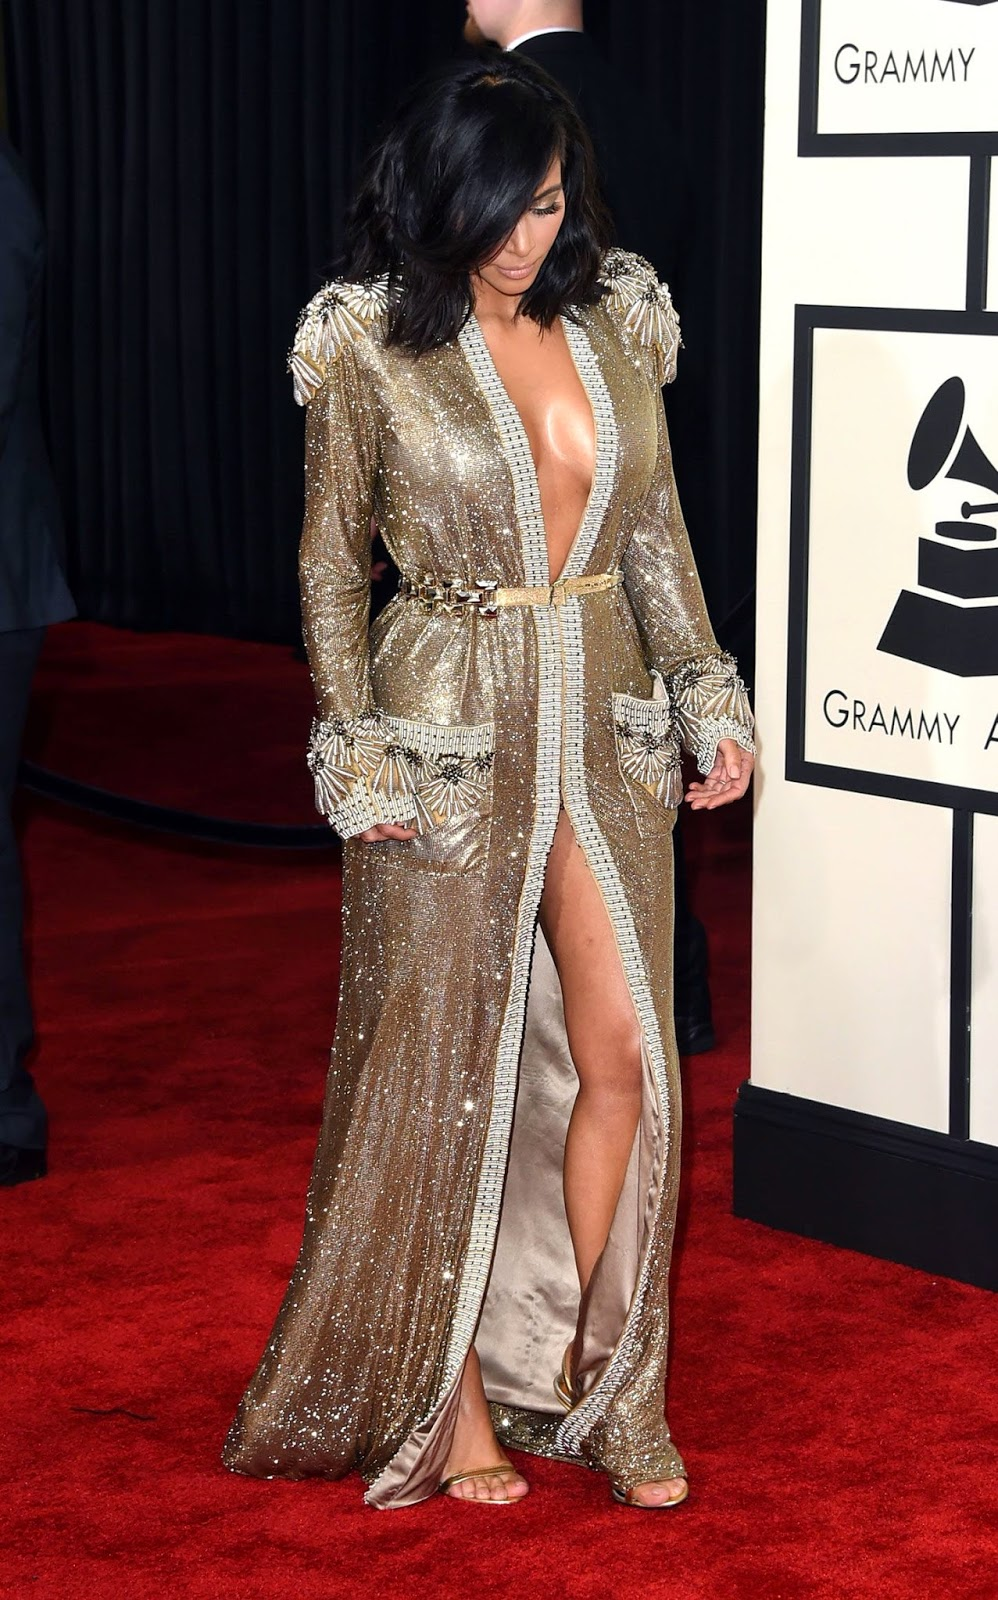 Kim Kardashian Dazzles In A Jean Paul Gaultier Gown At The